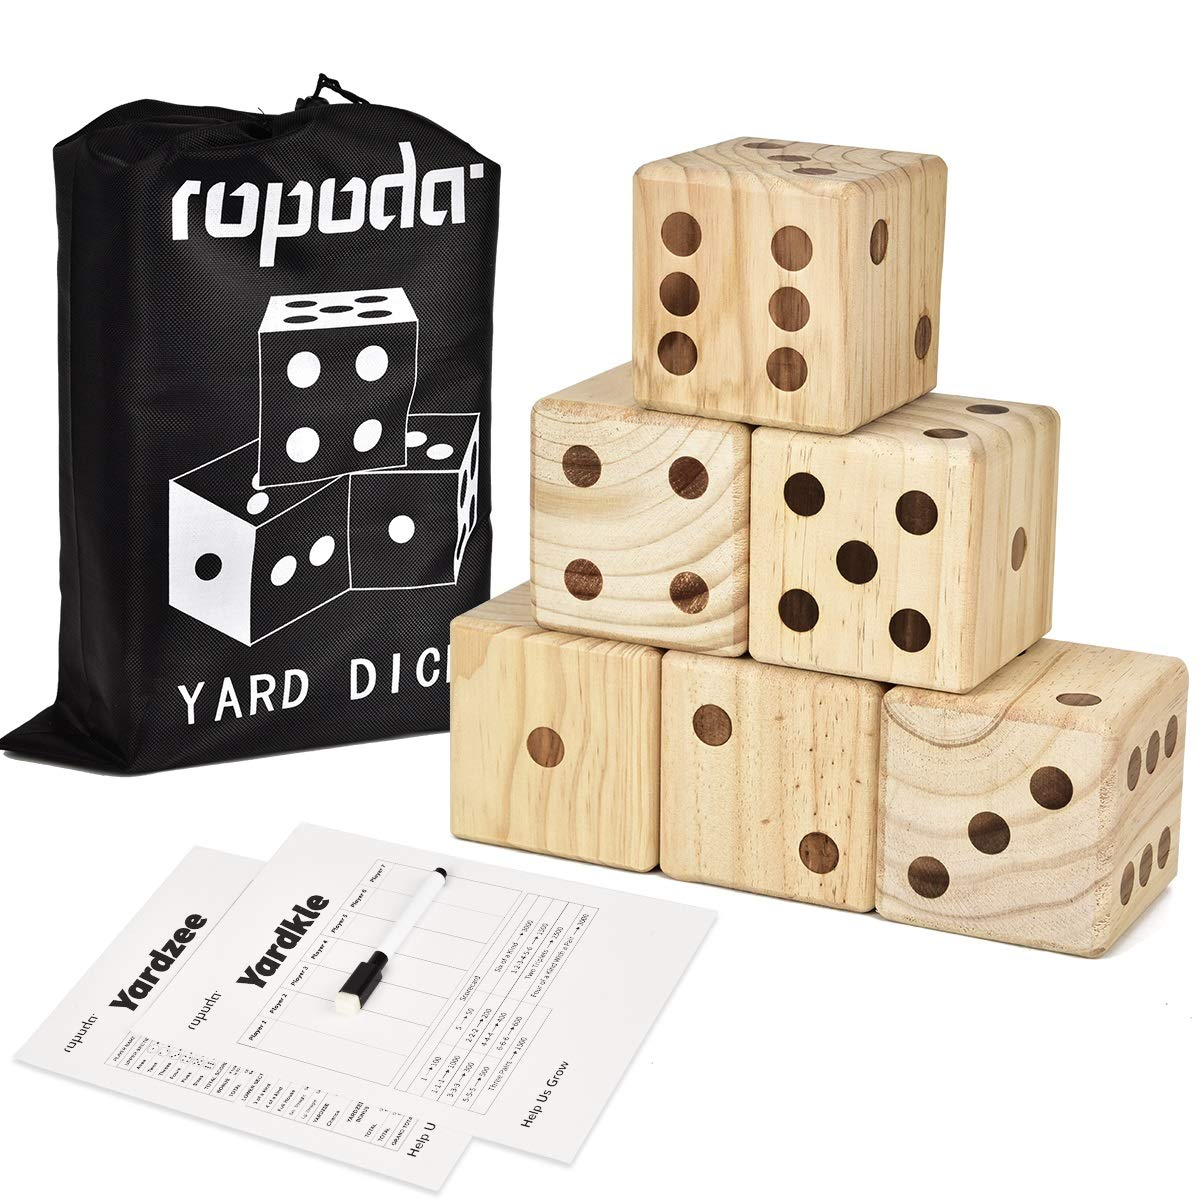 ROPODA Giant Wooden Yard Dice-Giant Outdoor Gaming Dice Set 3.5''-Includes 6 Dice, Scoreboard and Canvas Carrying Bag-Great Backyard and Lawn Game.